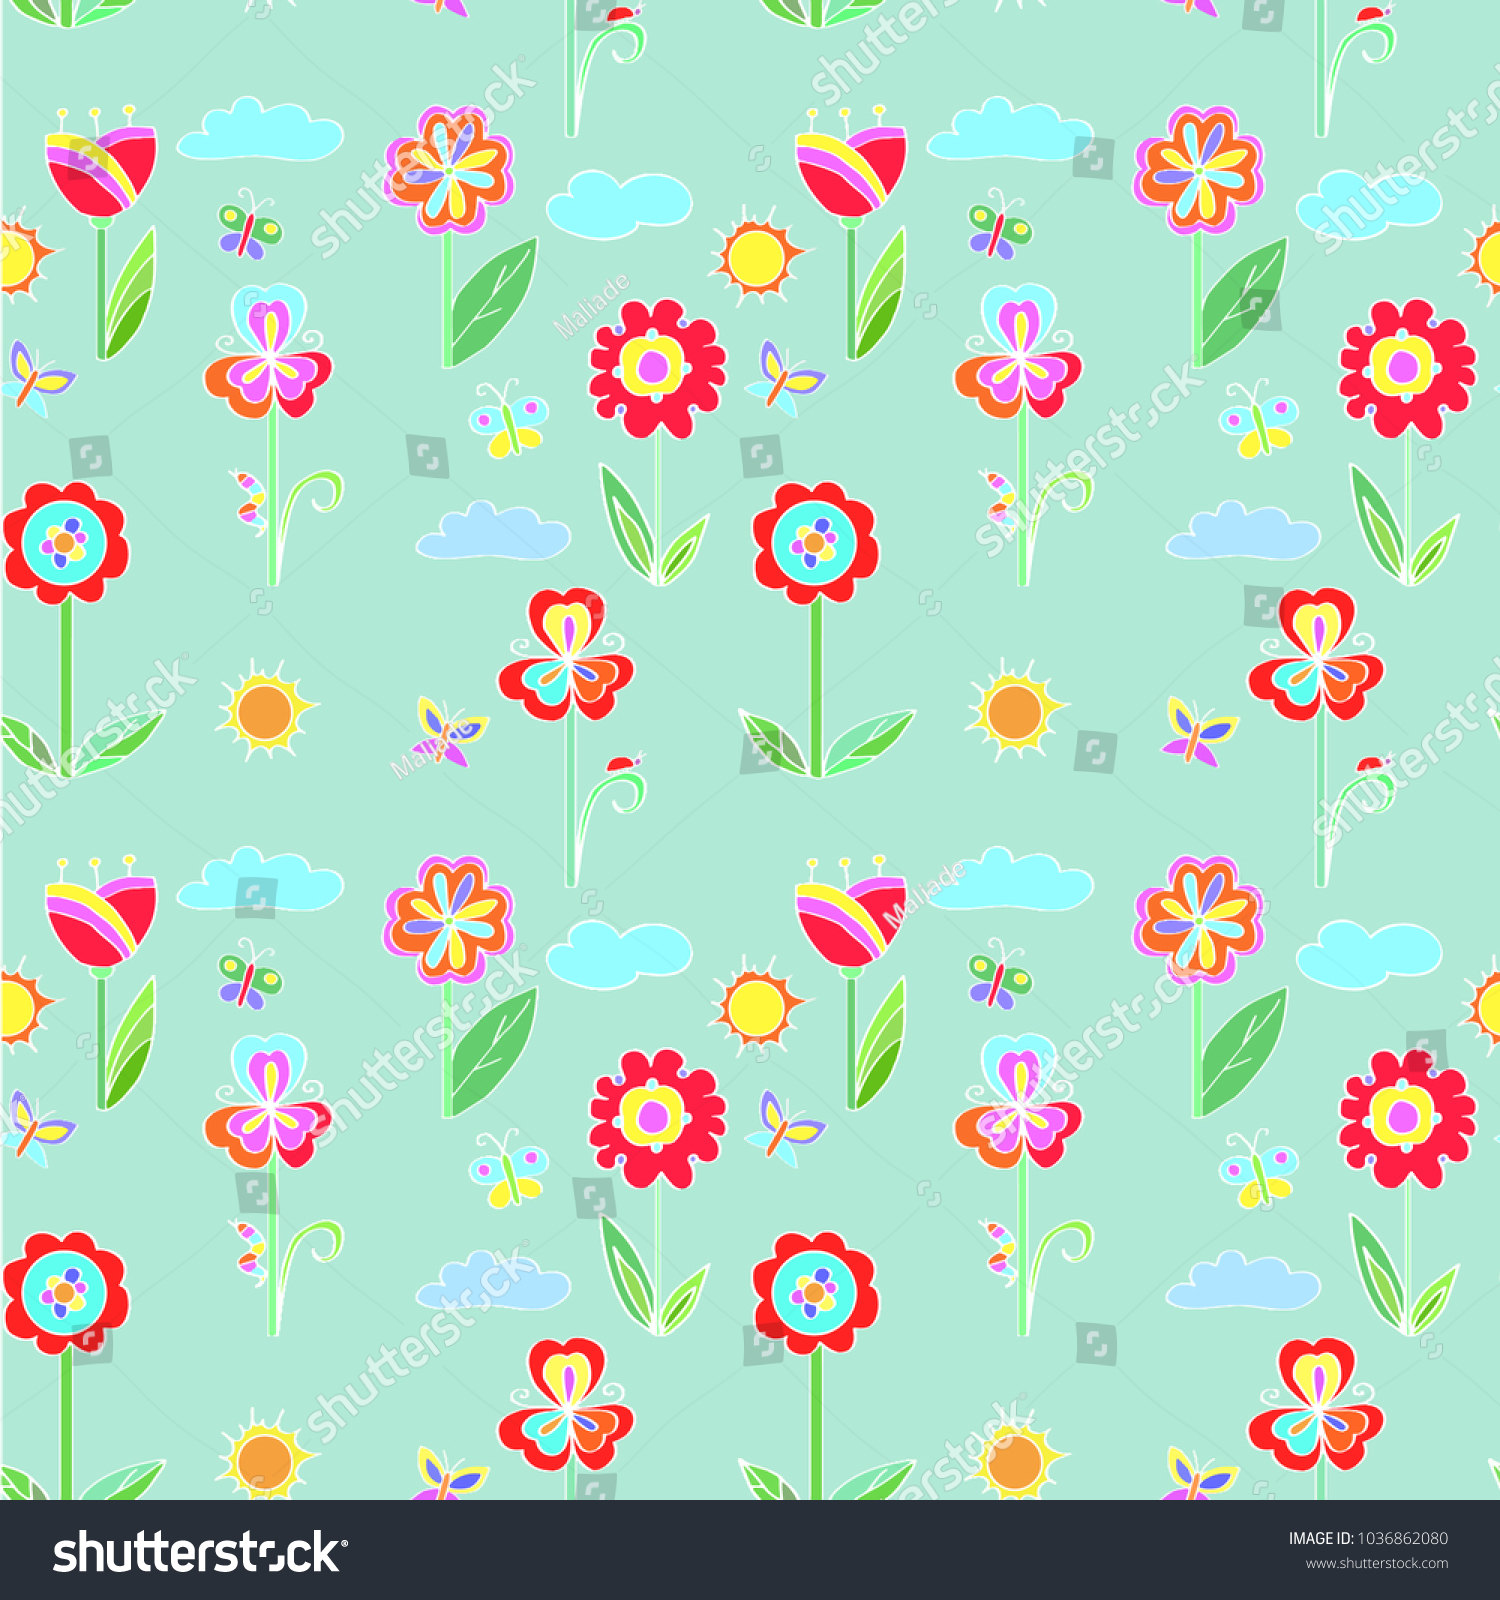 Childrens Bright Pattern Ornament Flowers Butterflies Stock Vector ...